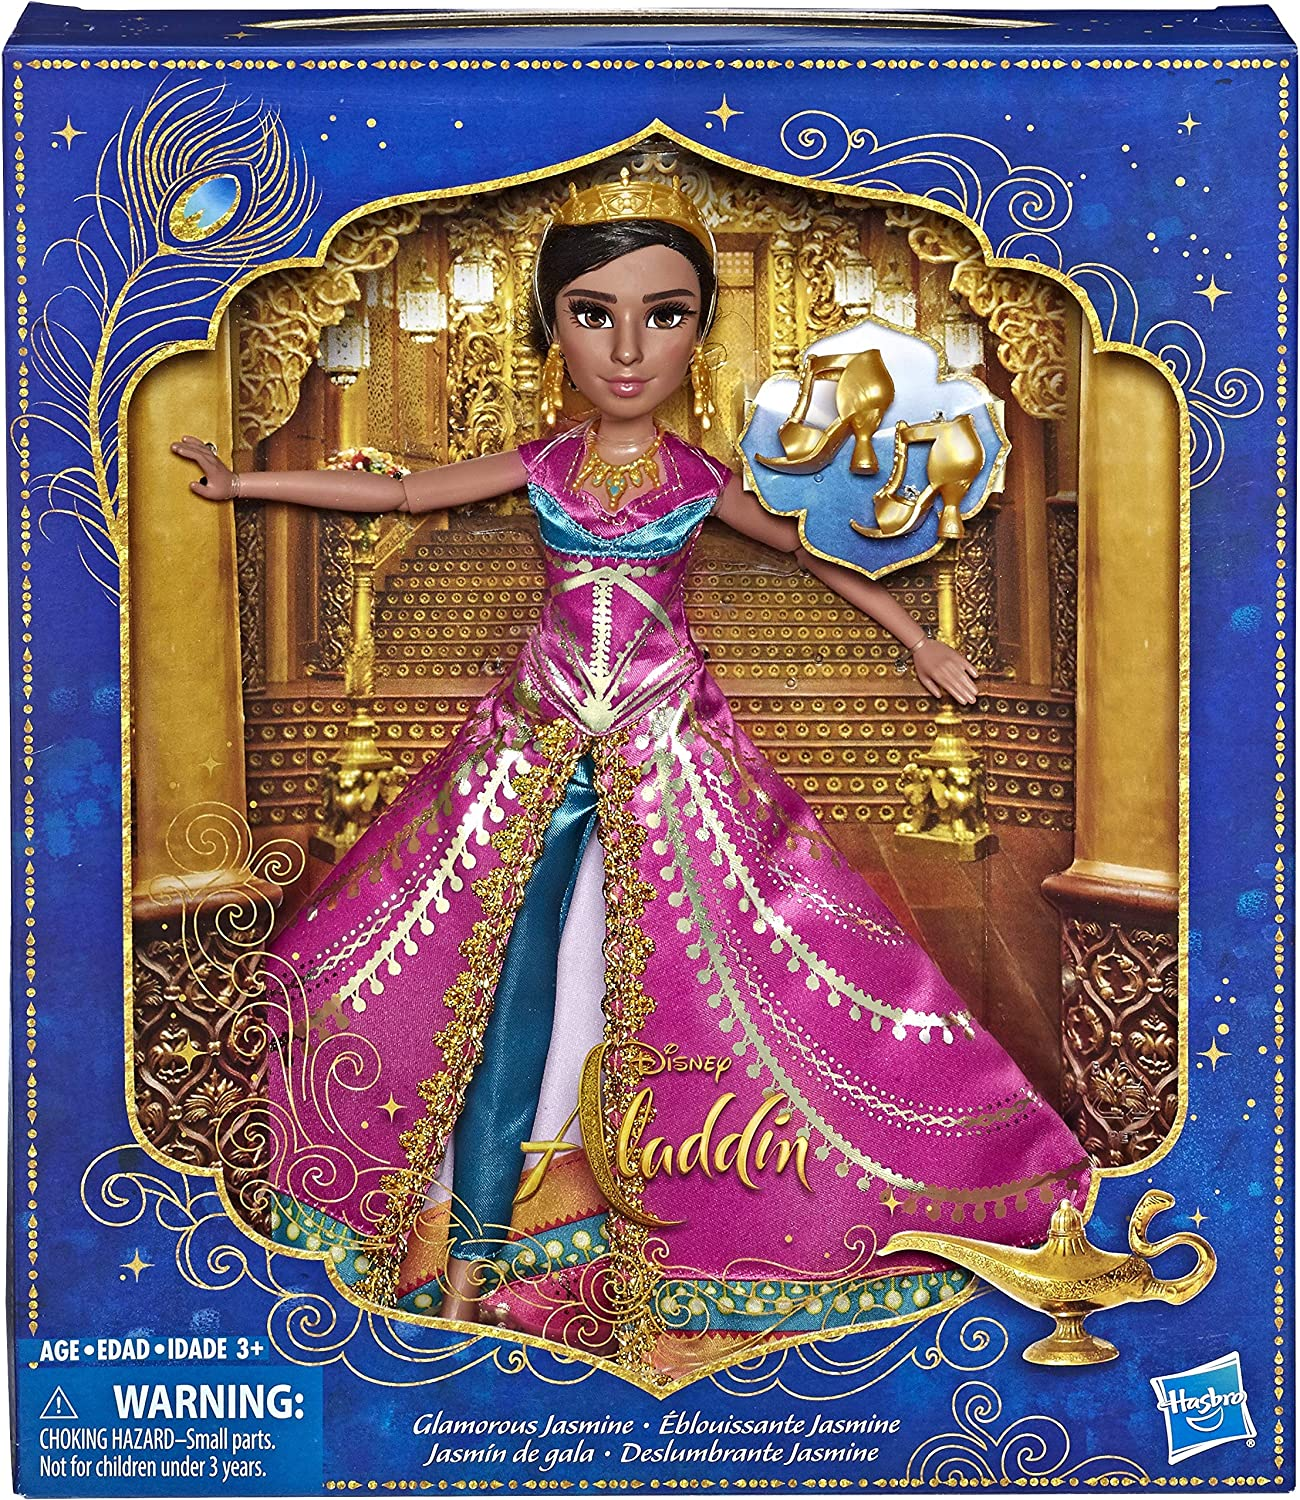 Very popular Disney Aladdin Glamorous Jasmine Manufacturer regenerated product Deluxe with Fashion Doll Gown